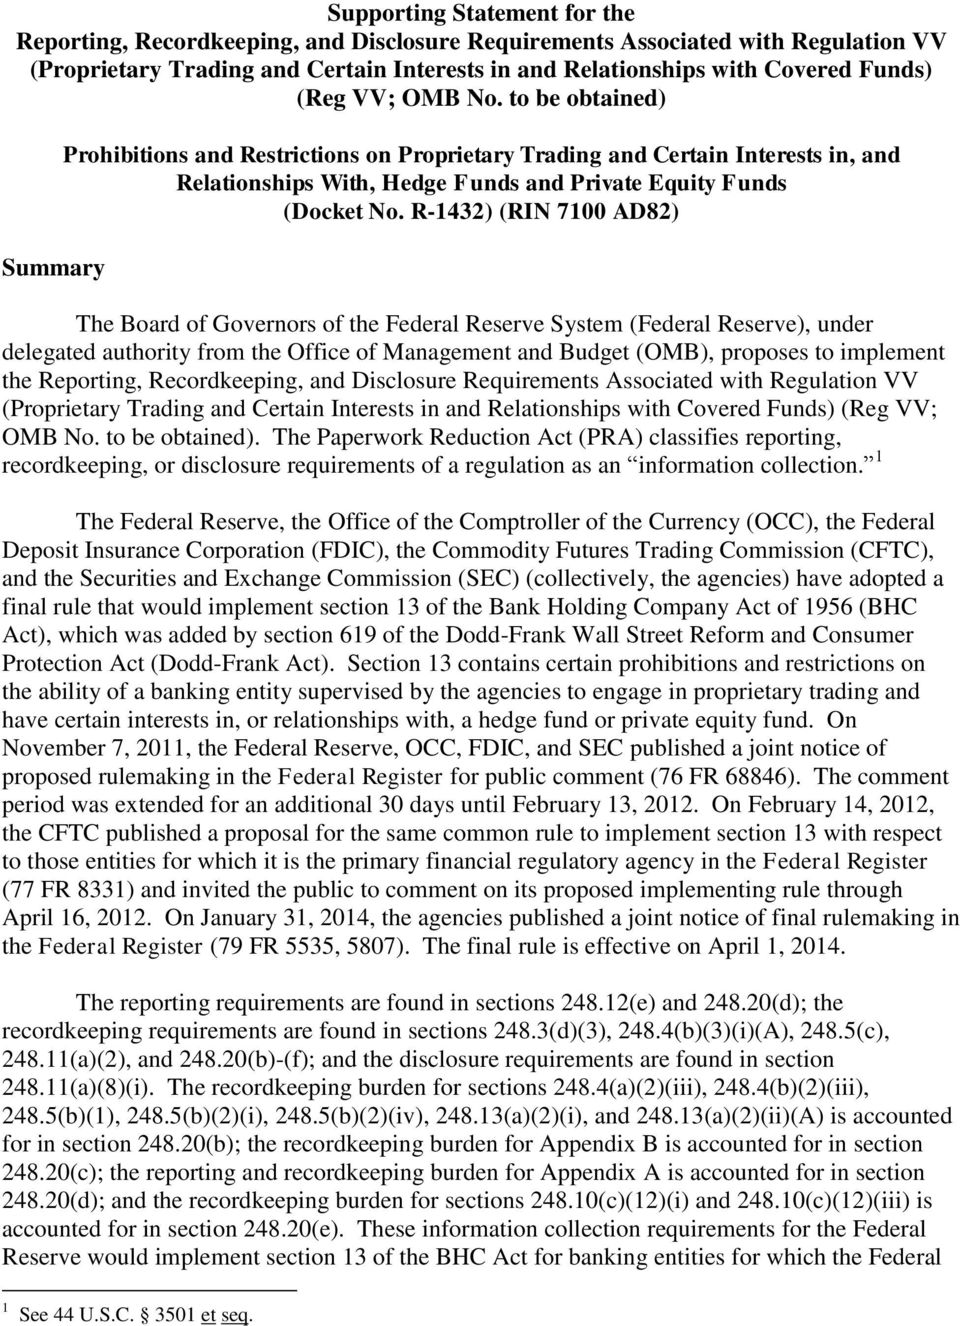 R-1432) (RIN 7100 AD82) The Board of Governors of the Federal Reserve System (Federal Reserve), under delegated authority from the Office of Management and Budget (OMB), proposes to implement the